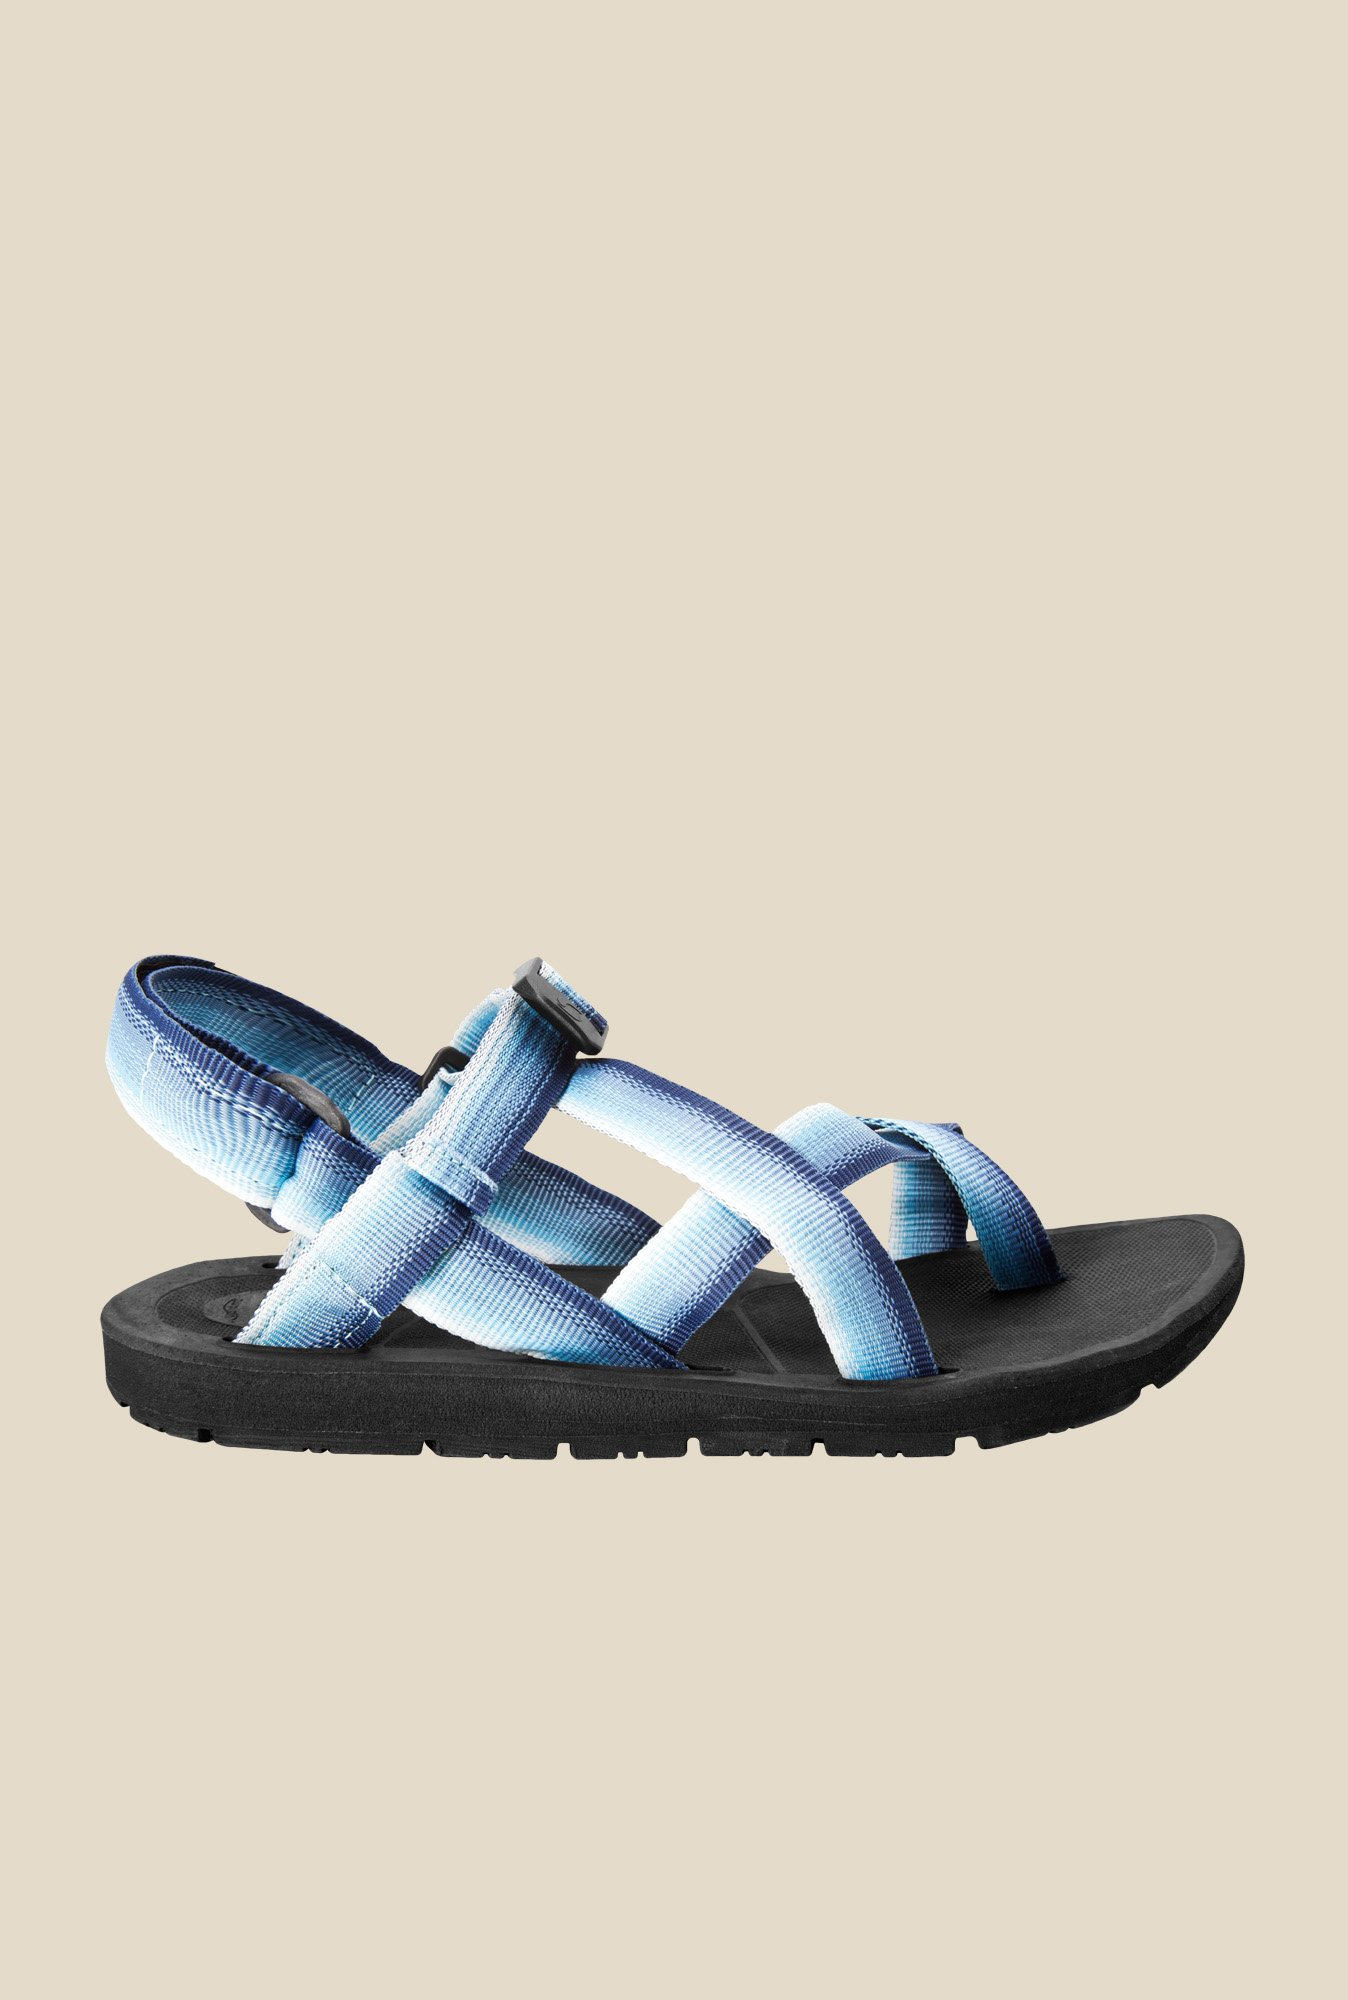 Wildcraft Blue Back Strap Sandals